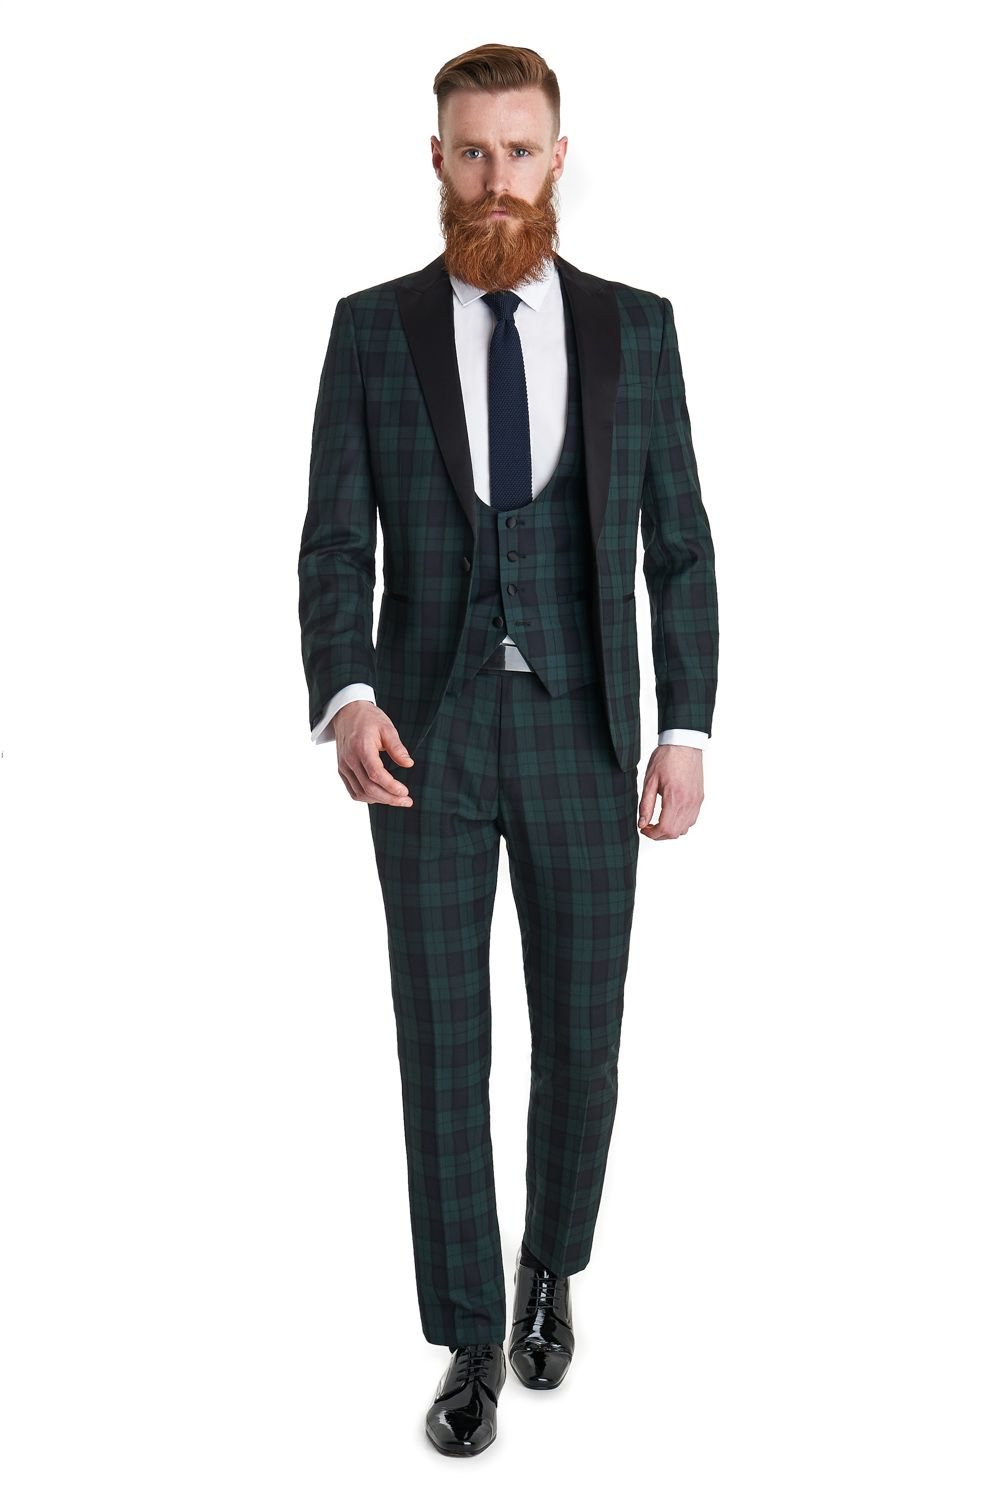 Ventuno 21 2 piece Slim Fit Green Tartan Dress Suit | I Know What ...